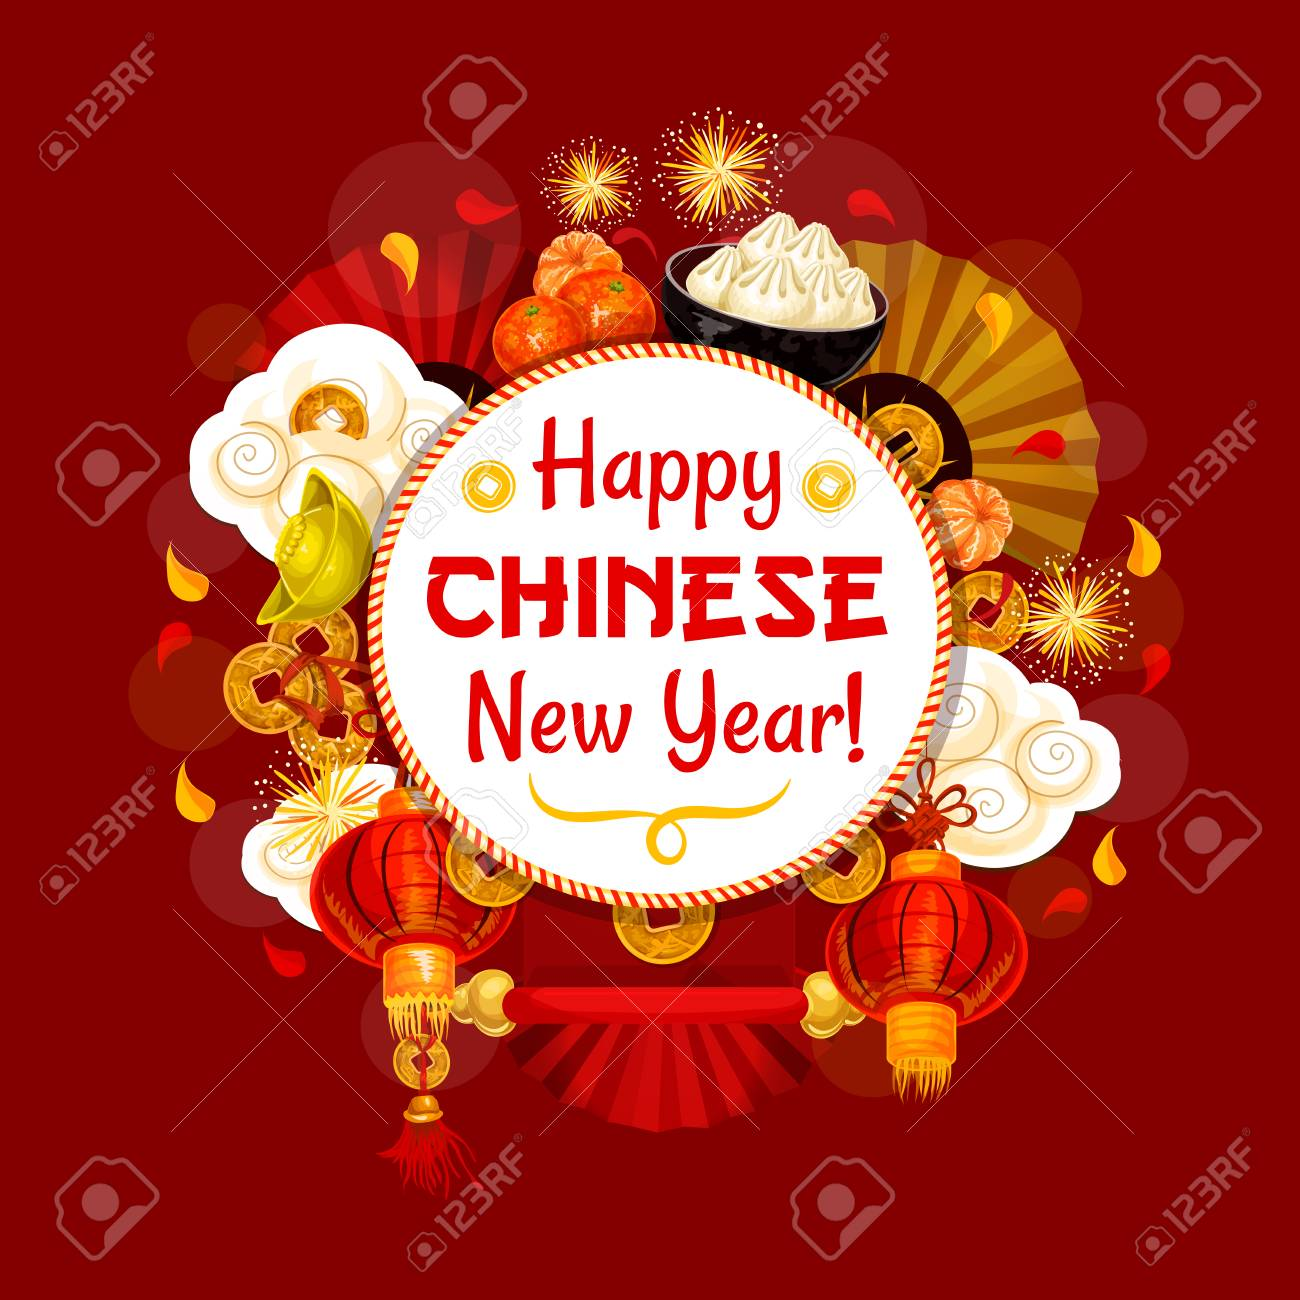 Chinese New Year E Card Free Greeting Cards Online Send Free Ecards